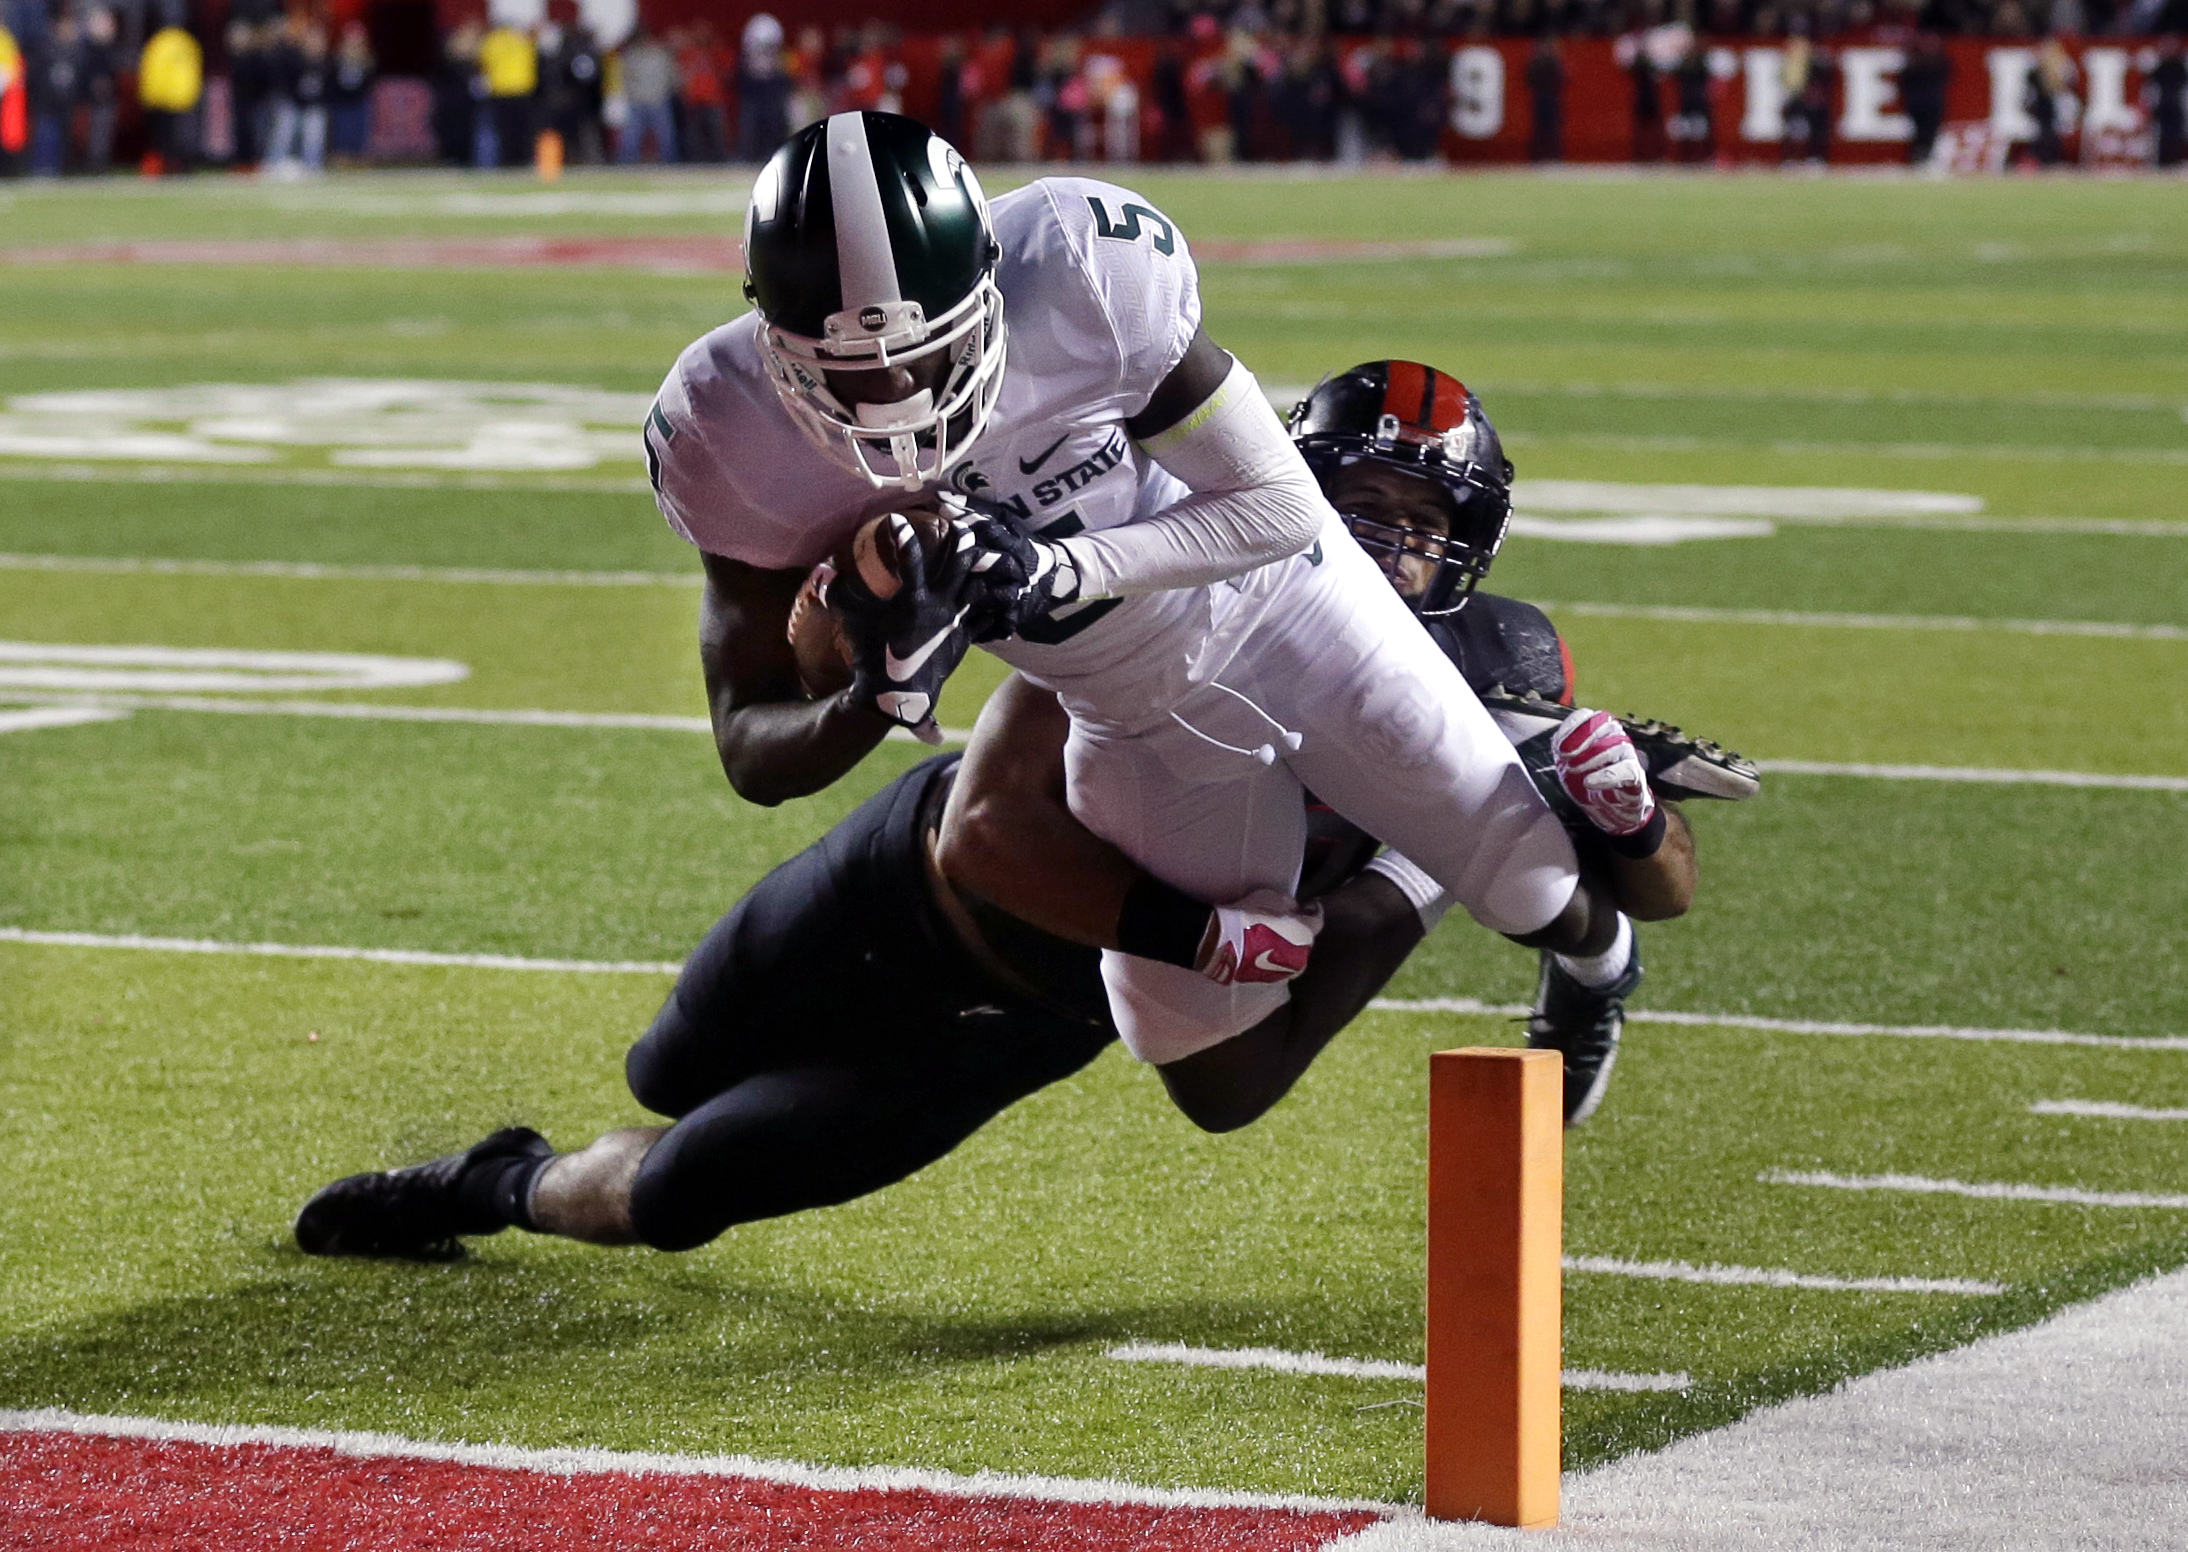 Michigan State wide receiver DeAnthony Arnett (5) dives for a touchdown as Rutgers defensive back Andre Hunt (30) cannot make a tackle during the second half of an NCAA college football game Saturday, Oct. 10, 2015, in Piscataway, N.J. (AP Photo/Mel Evans